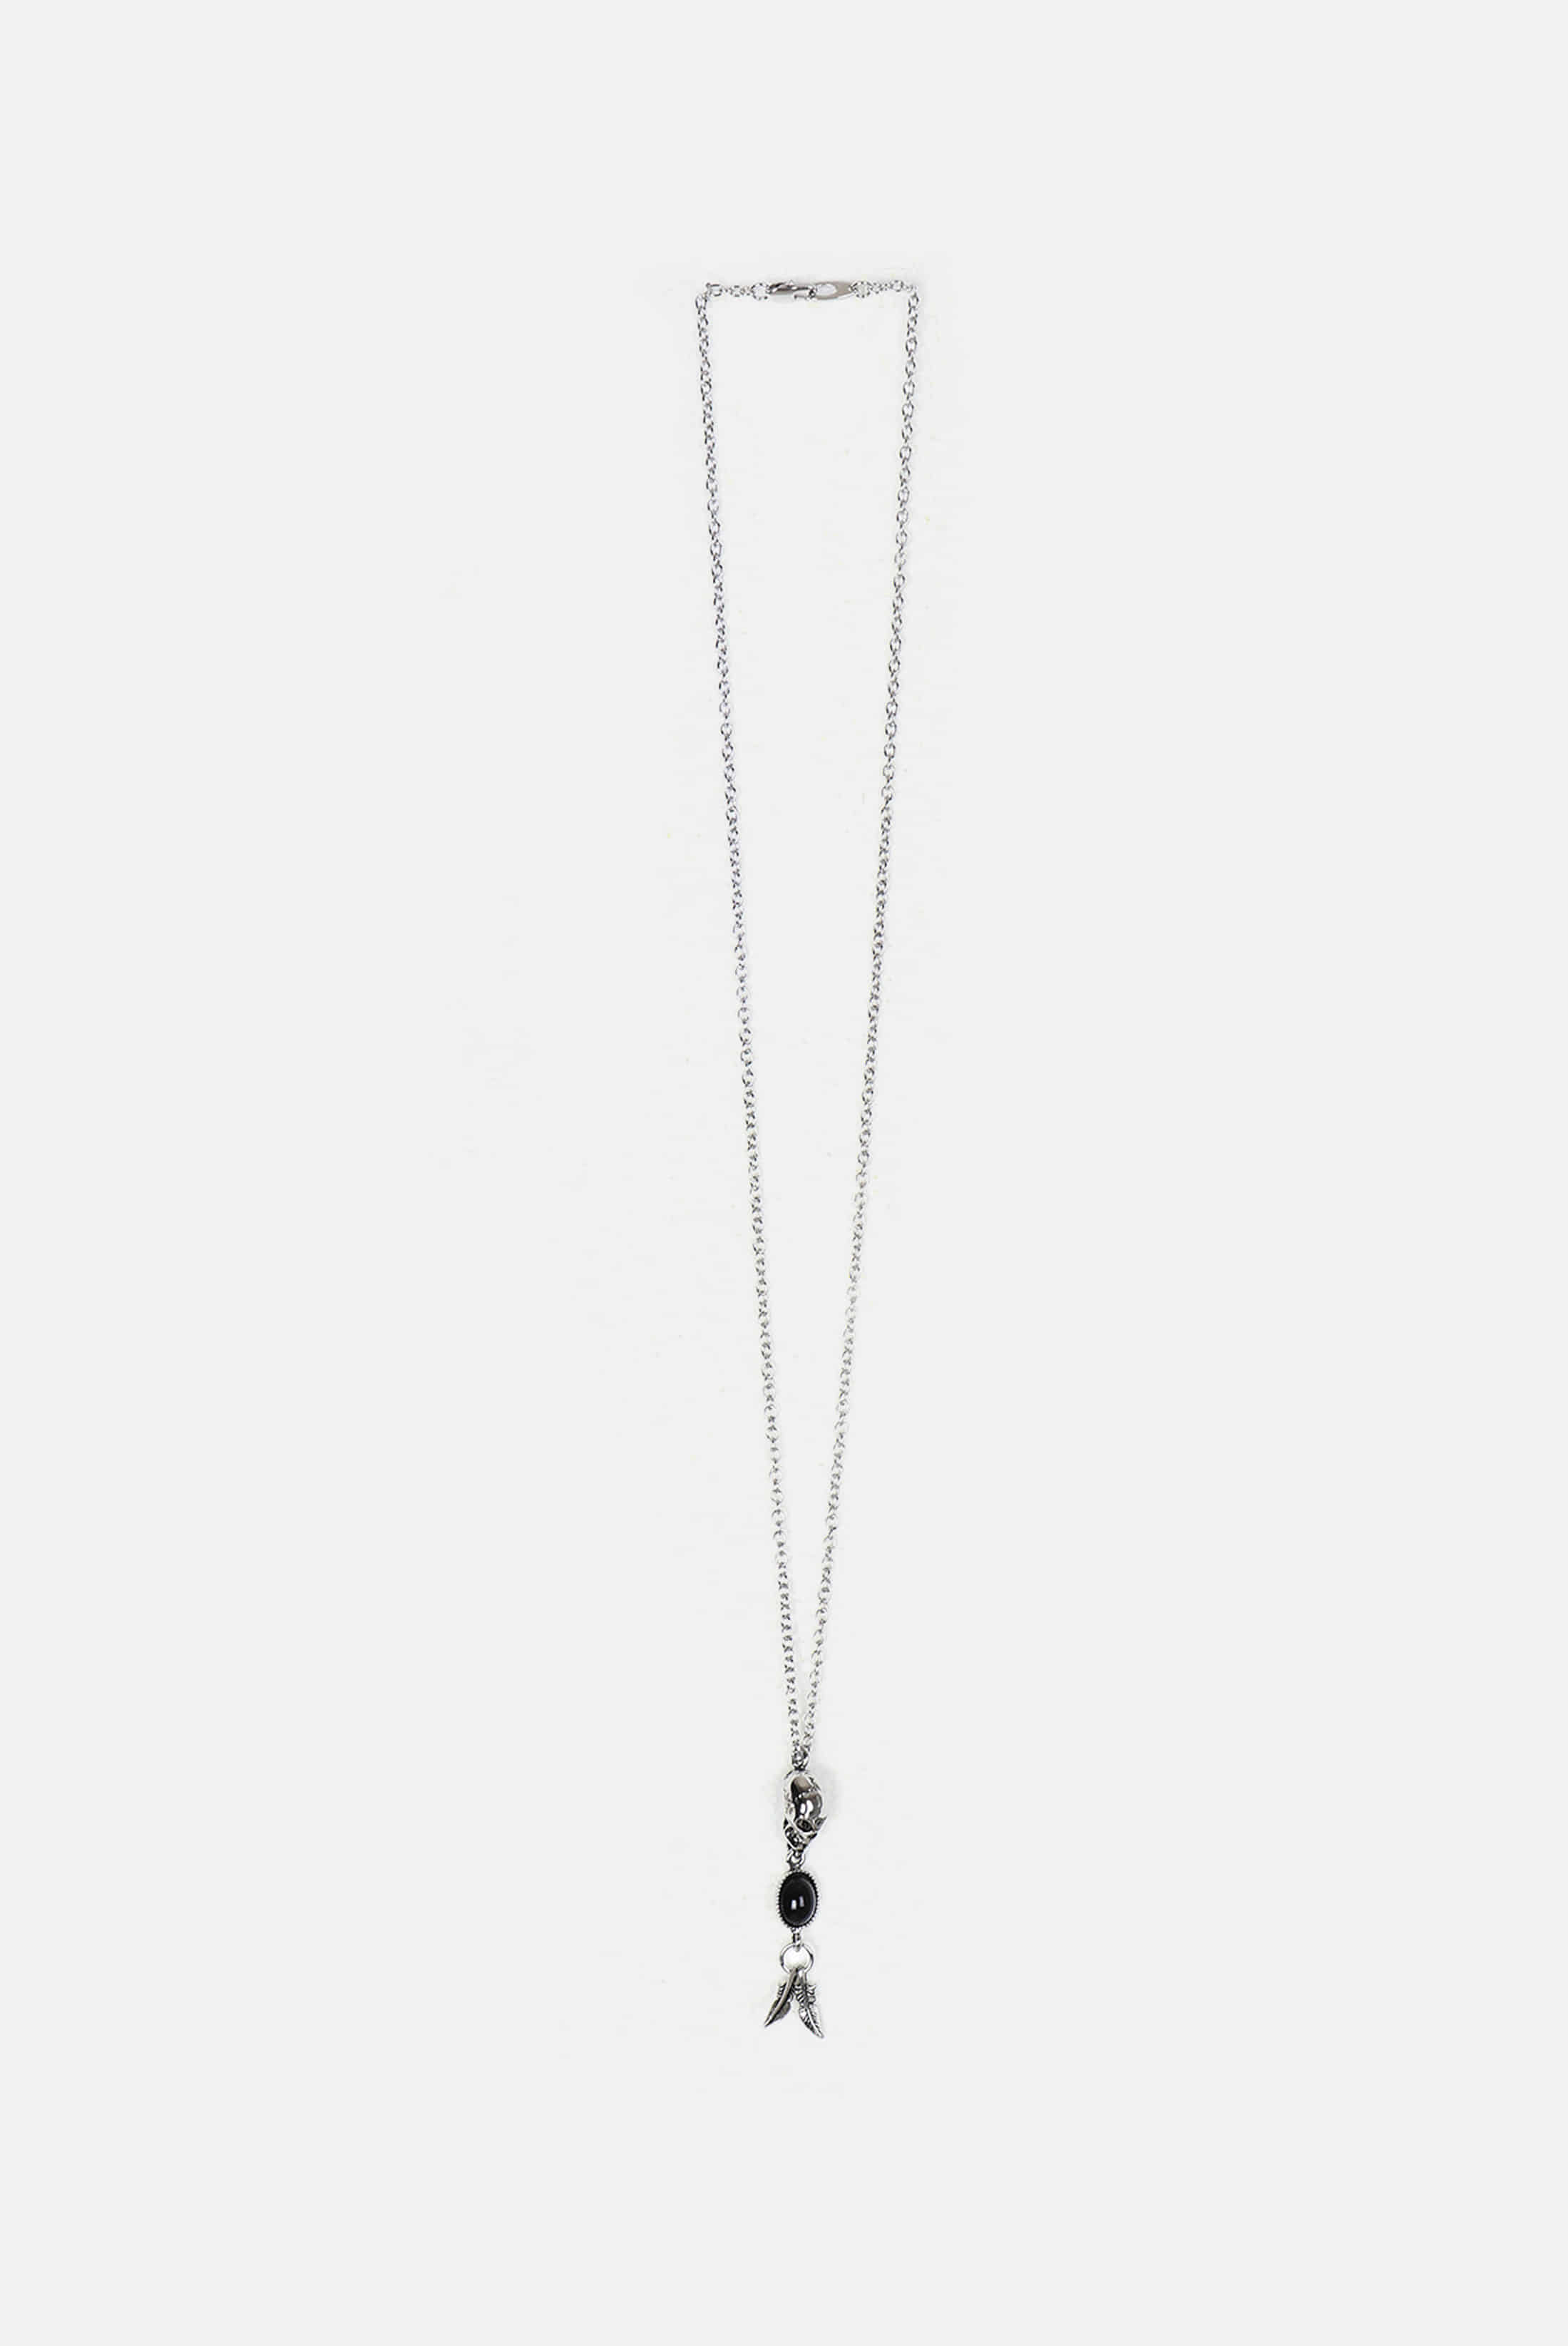 Onyx_Skull Long Necklace